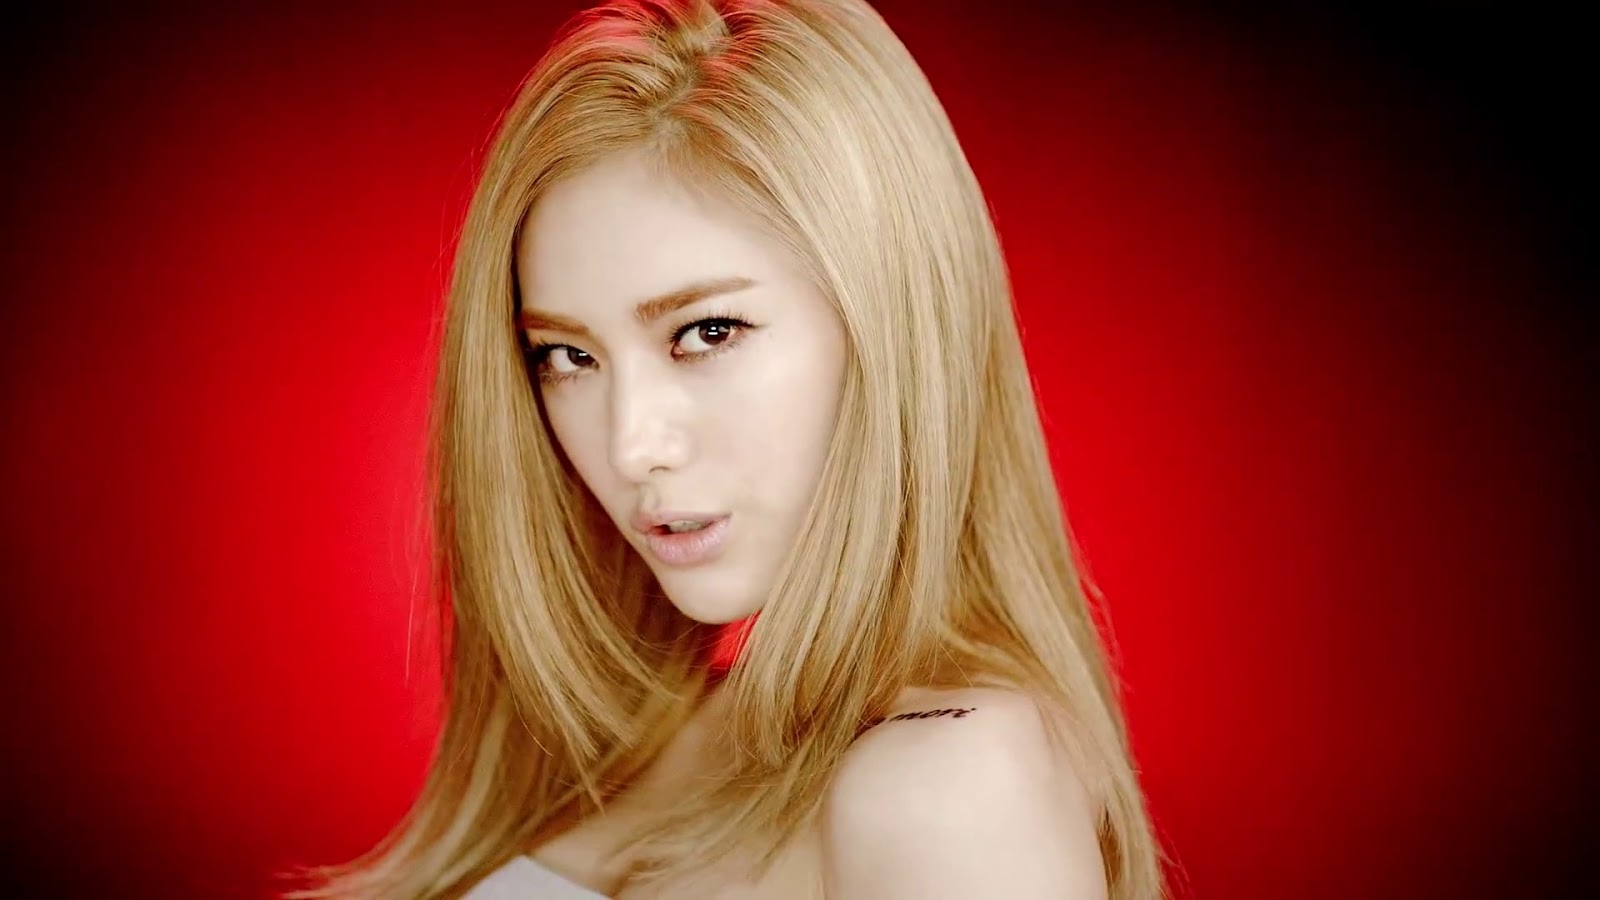 After School Nana First Love Hot Sexy Wallpaper HD 1600x900